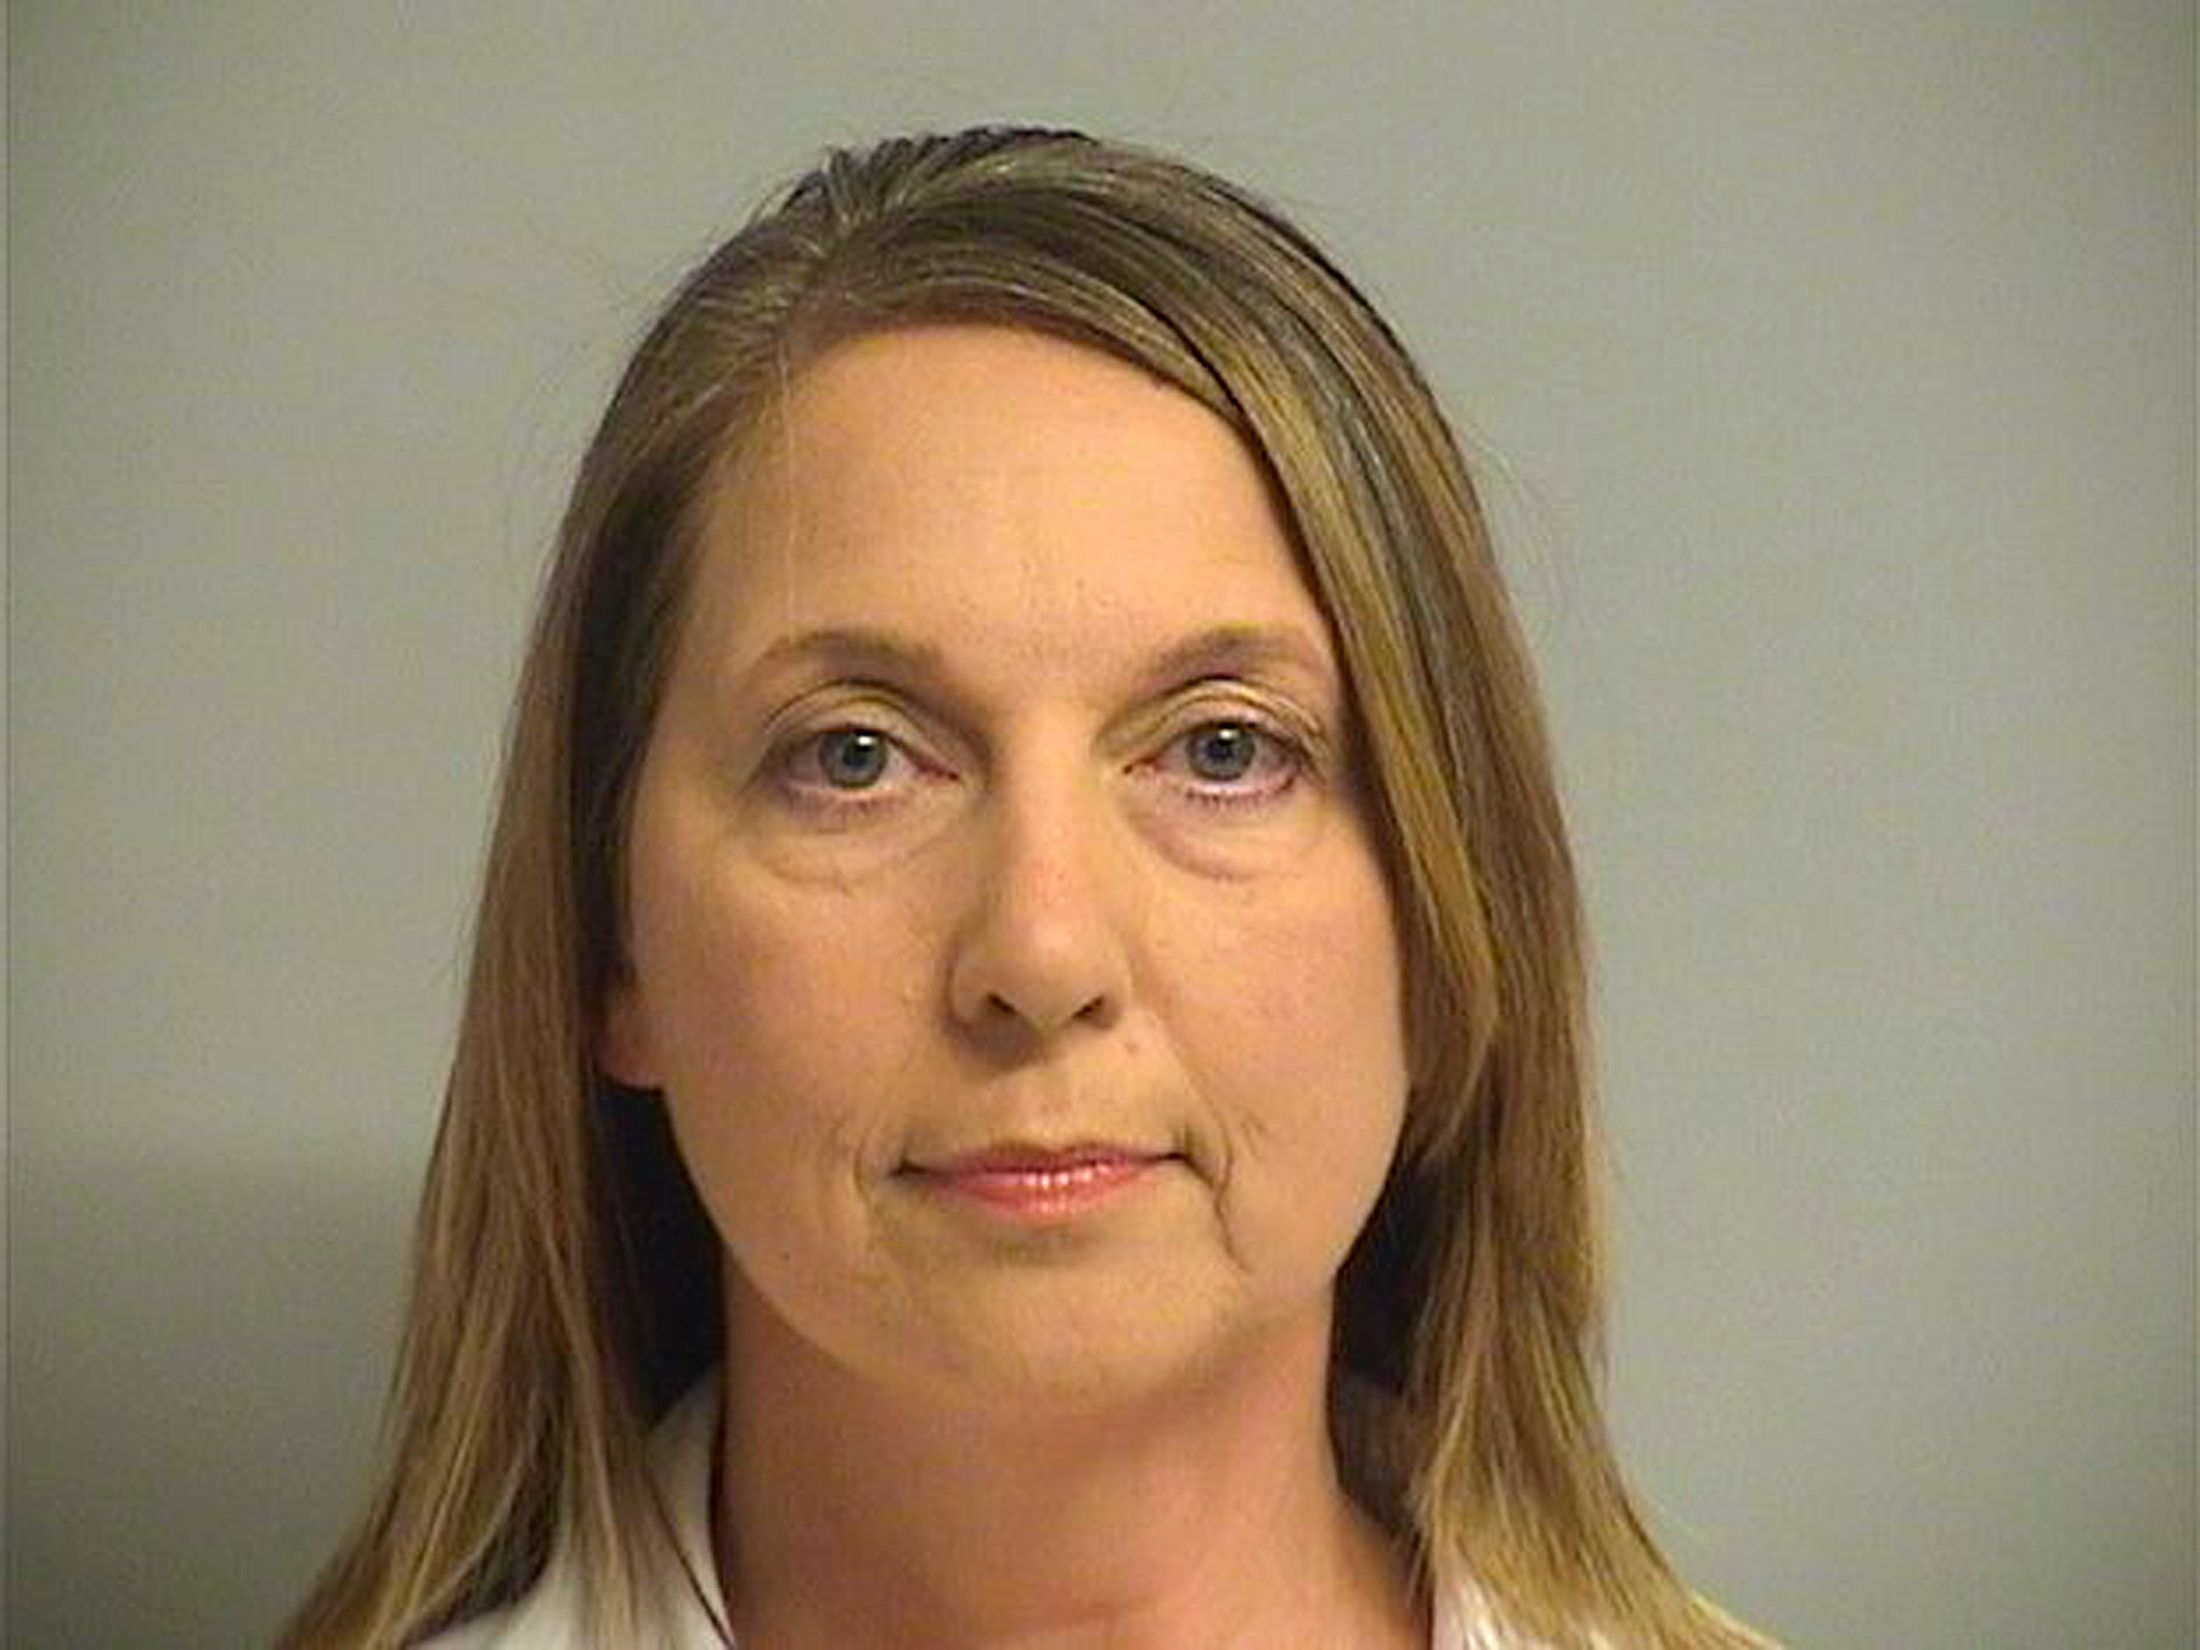 Tulsa, Oklahoma Police Officer Betty Shelby, 42, charged with first-degree manslaughter in the death of 40-year-old Terence Crutcher, is shown in this Tulsa County Jail booking photo in Tulsa, Oklahoma, U.S., September 23, 2016.  Courtesy Tulsa County Jail/Handout via REUTERS    ATTENTION EDITORS - THIS IMAGE WAS PROVIDED BY A THIRD PARTY. EDITORIAL USE ONLY